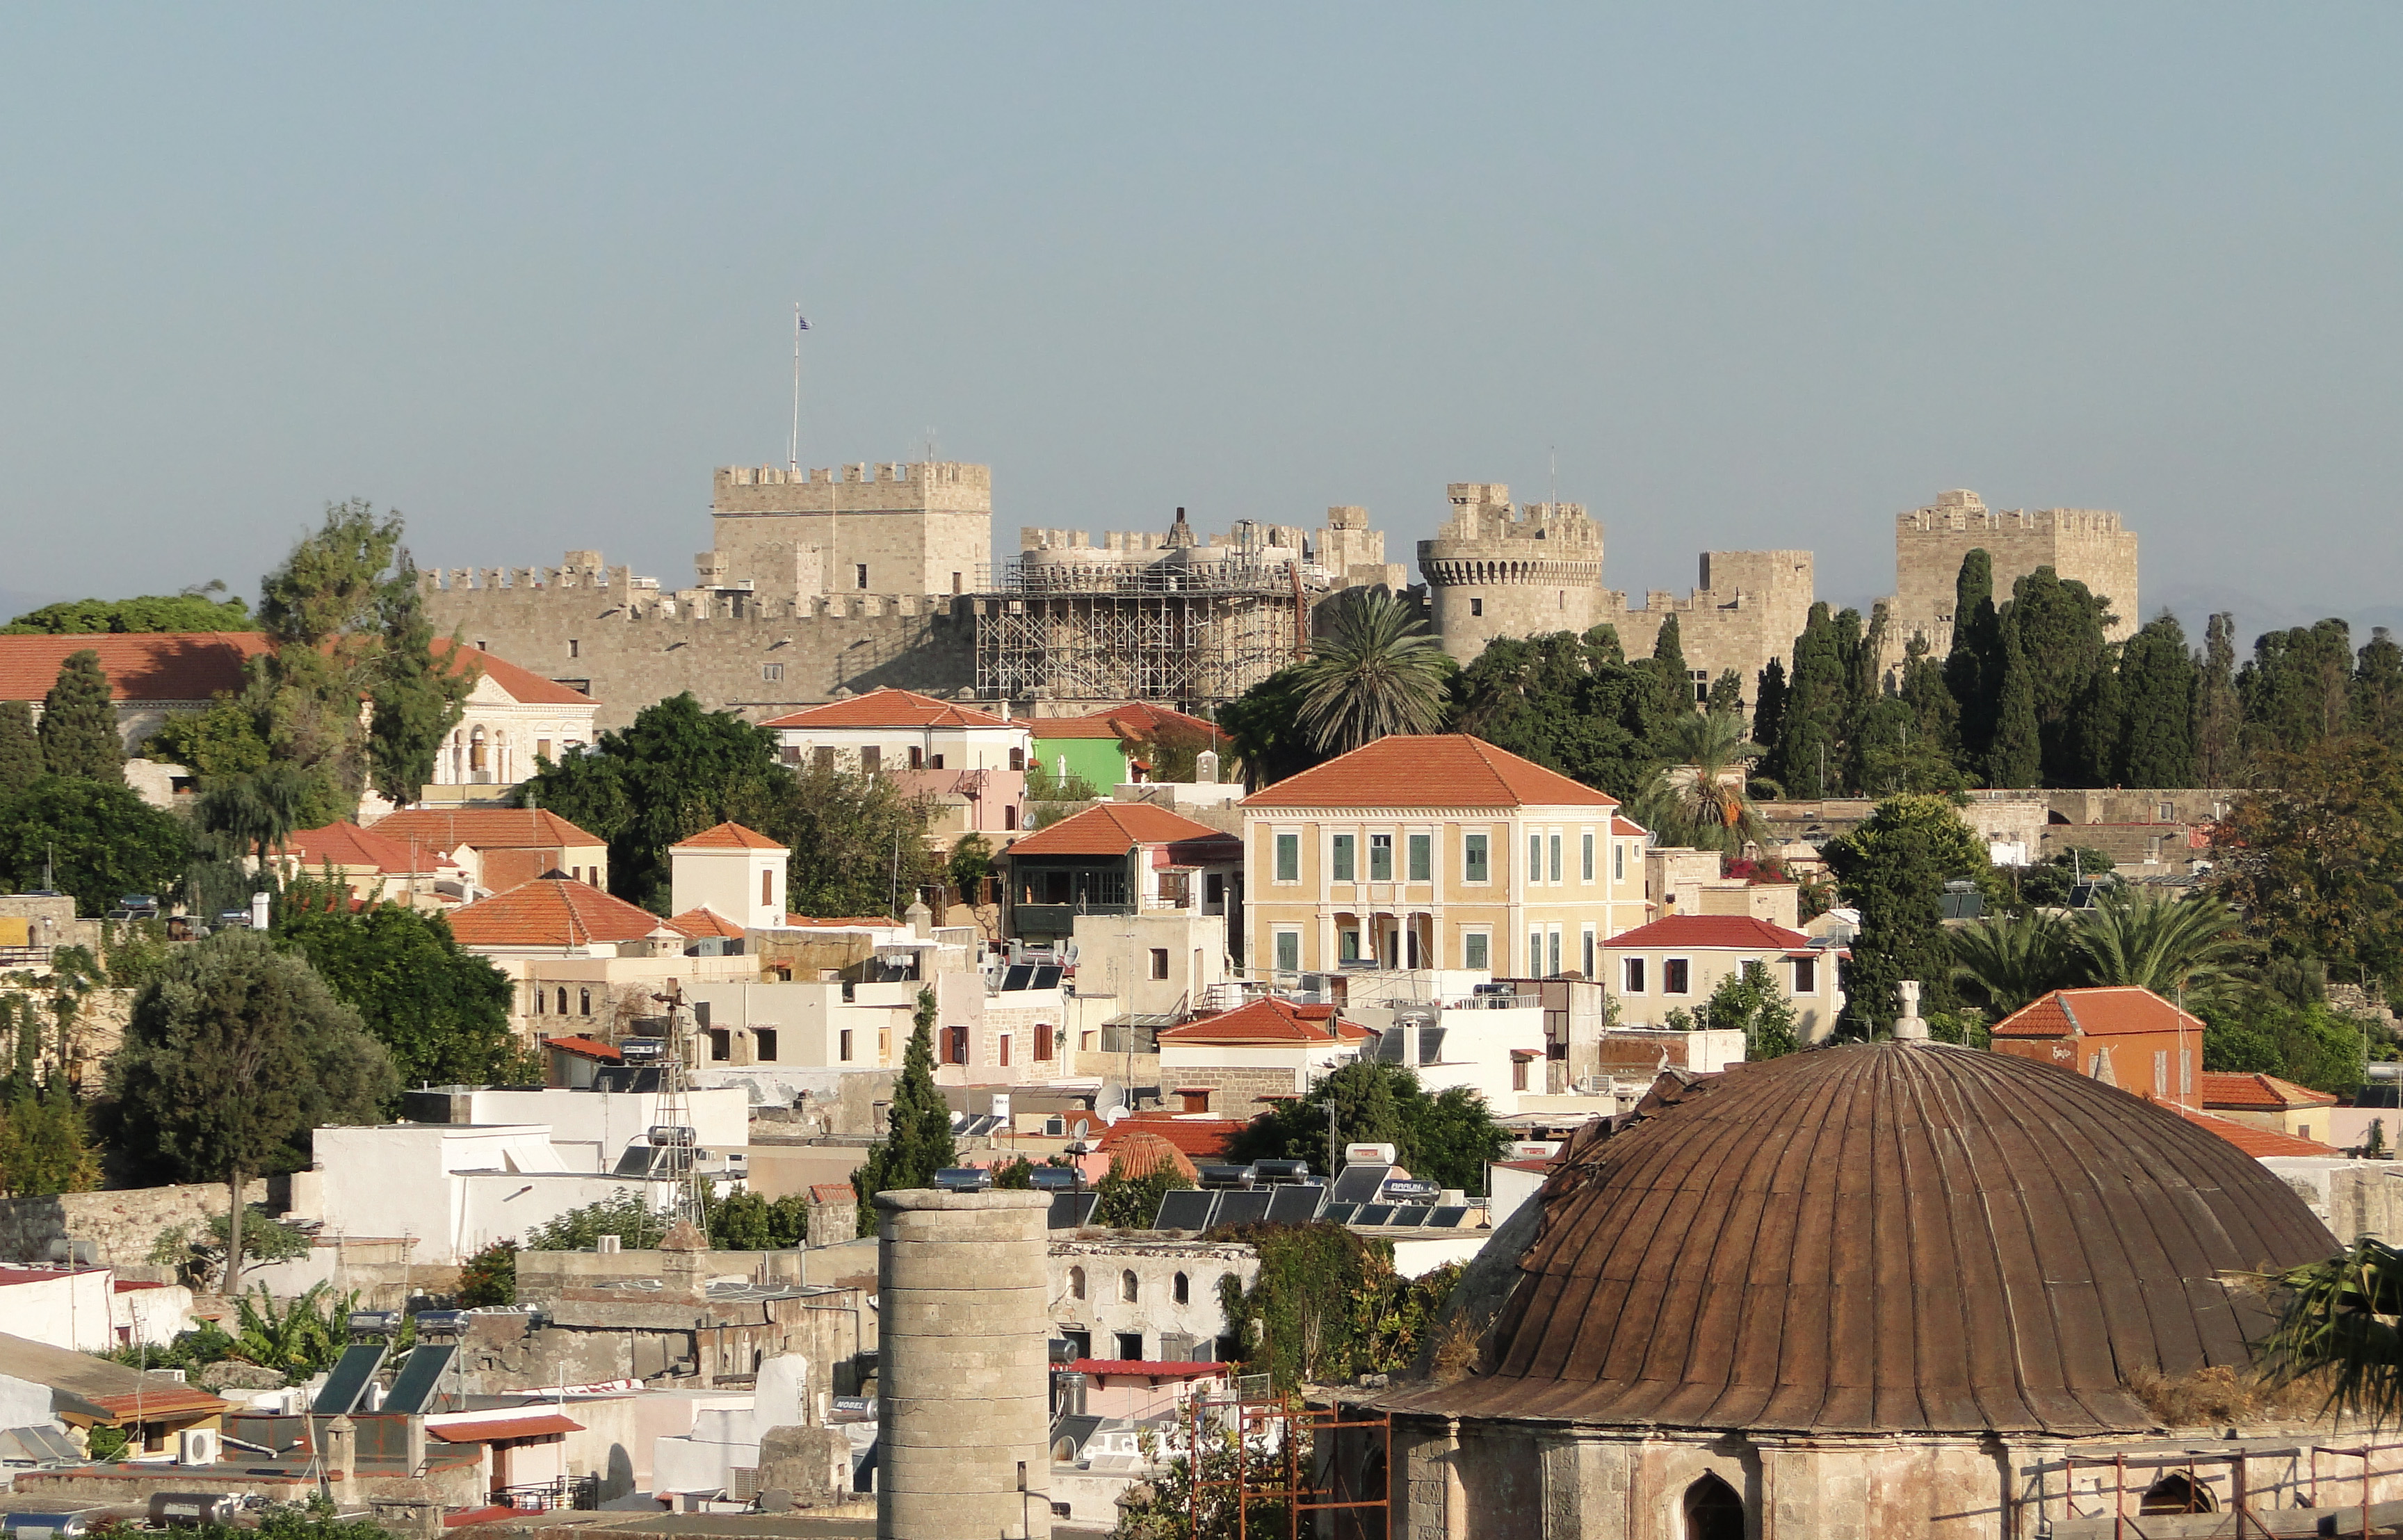 The Medieval City of Rhodes